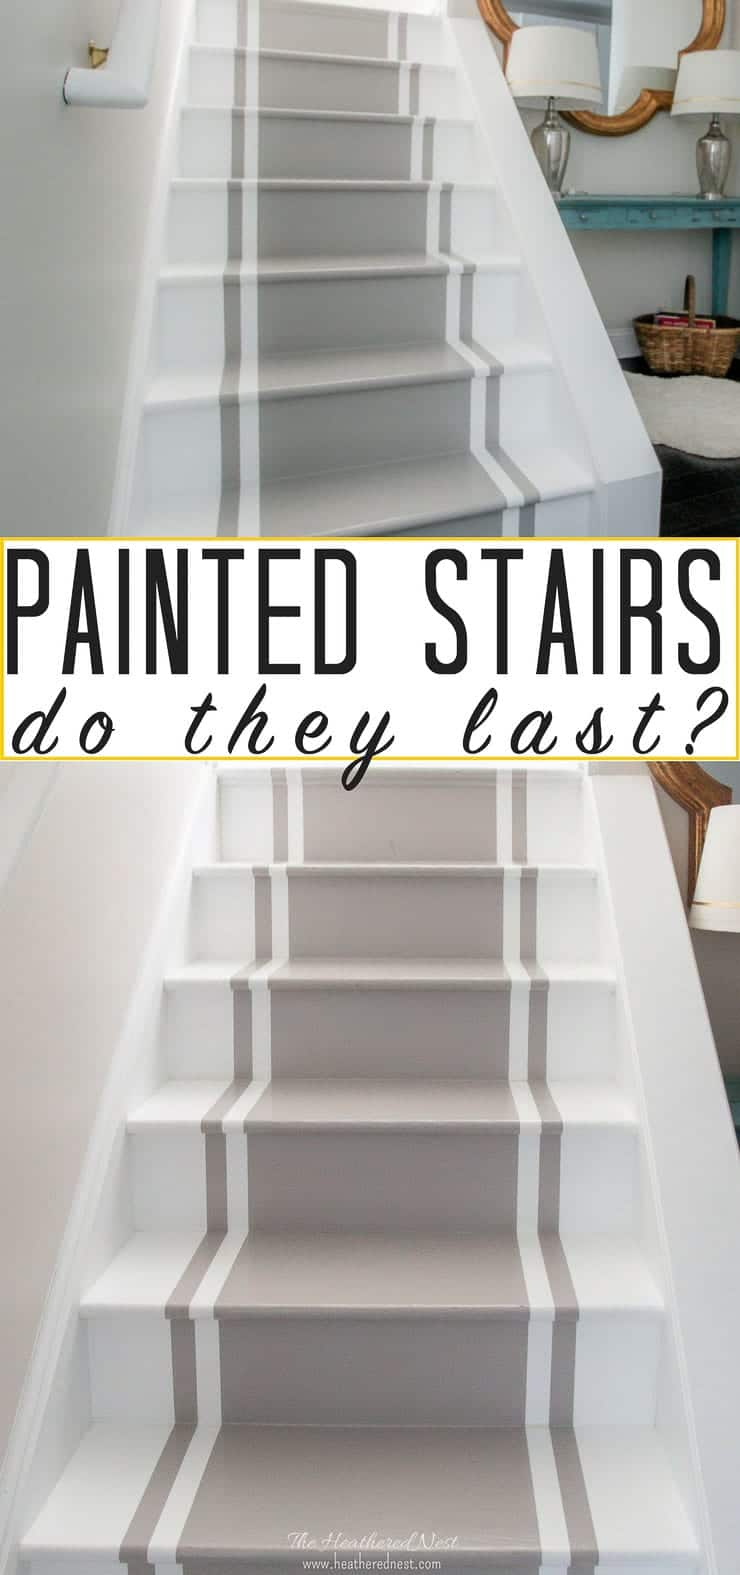 Painted stairs 2 years later - an update! How durable are DIY painted stairs? Here's your answer. #paintedstairs #DIYpaintedstairs #DIYpainting #howtopaintstairs #paintedstairrunner